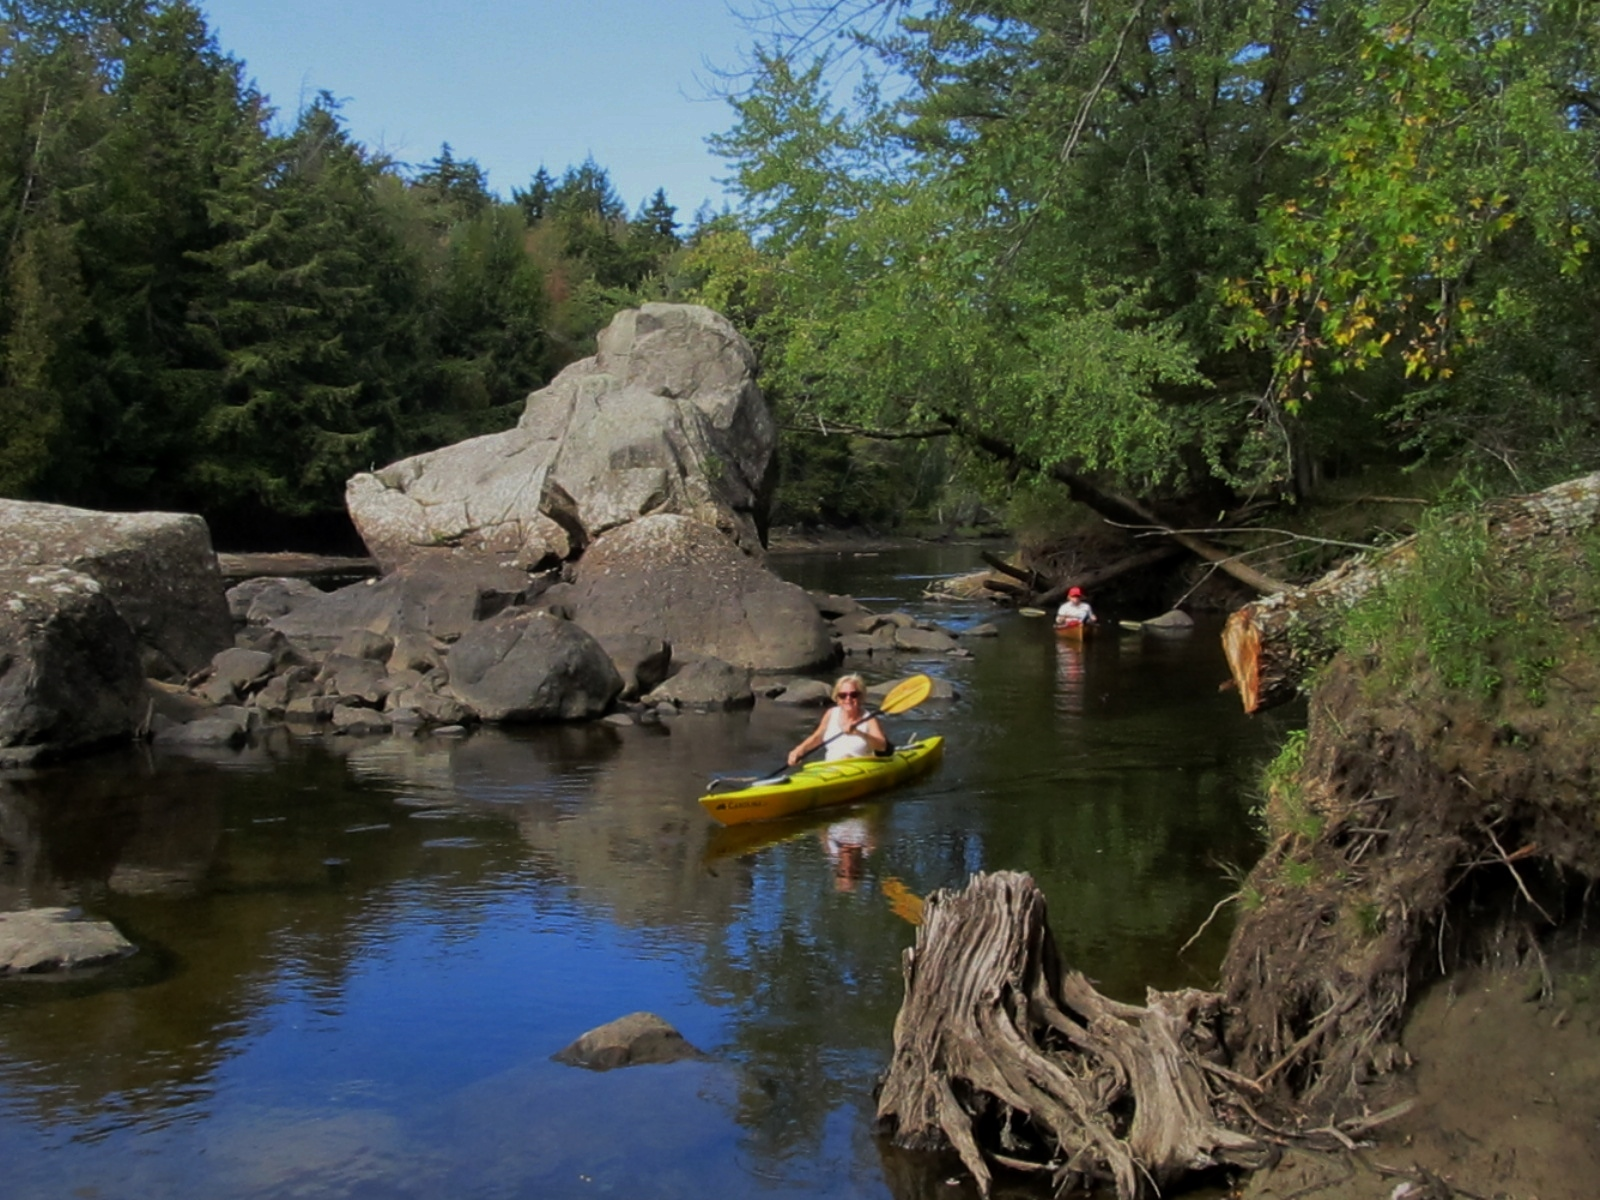 Jane and Anne paddling near the boulders at our destination - Raquette River Falls!